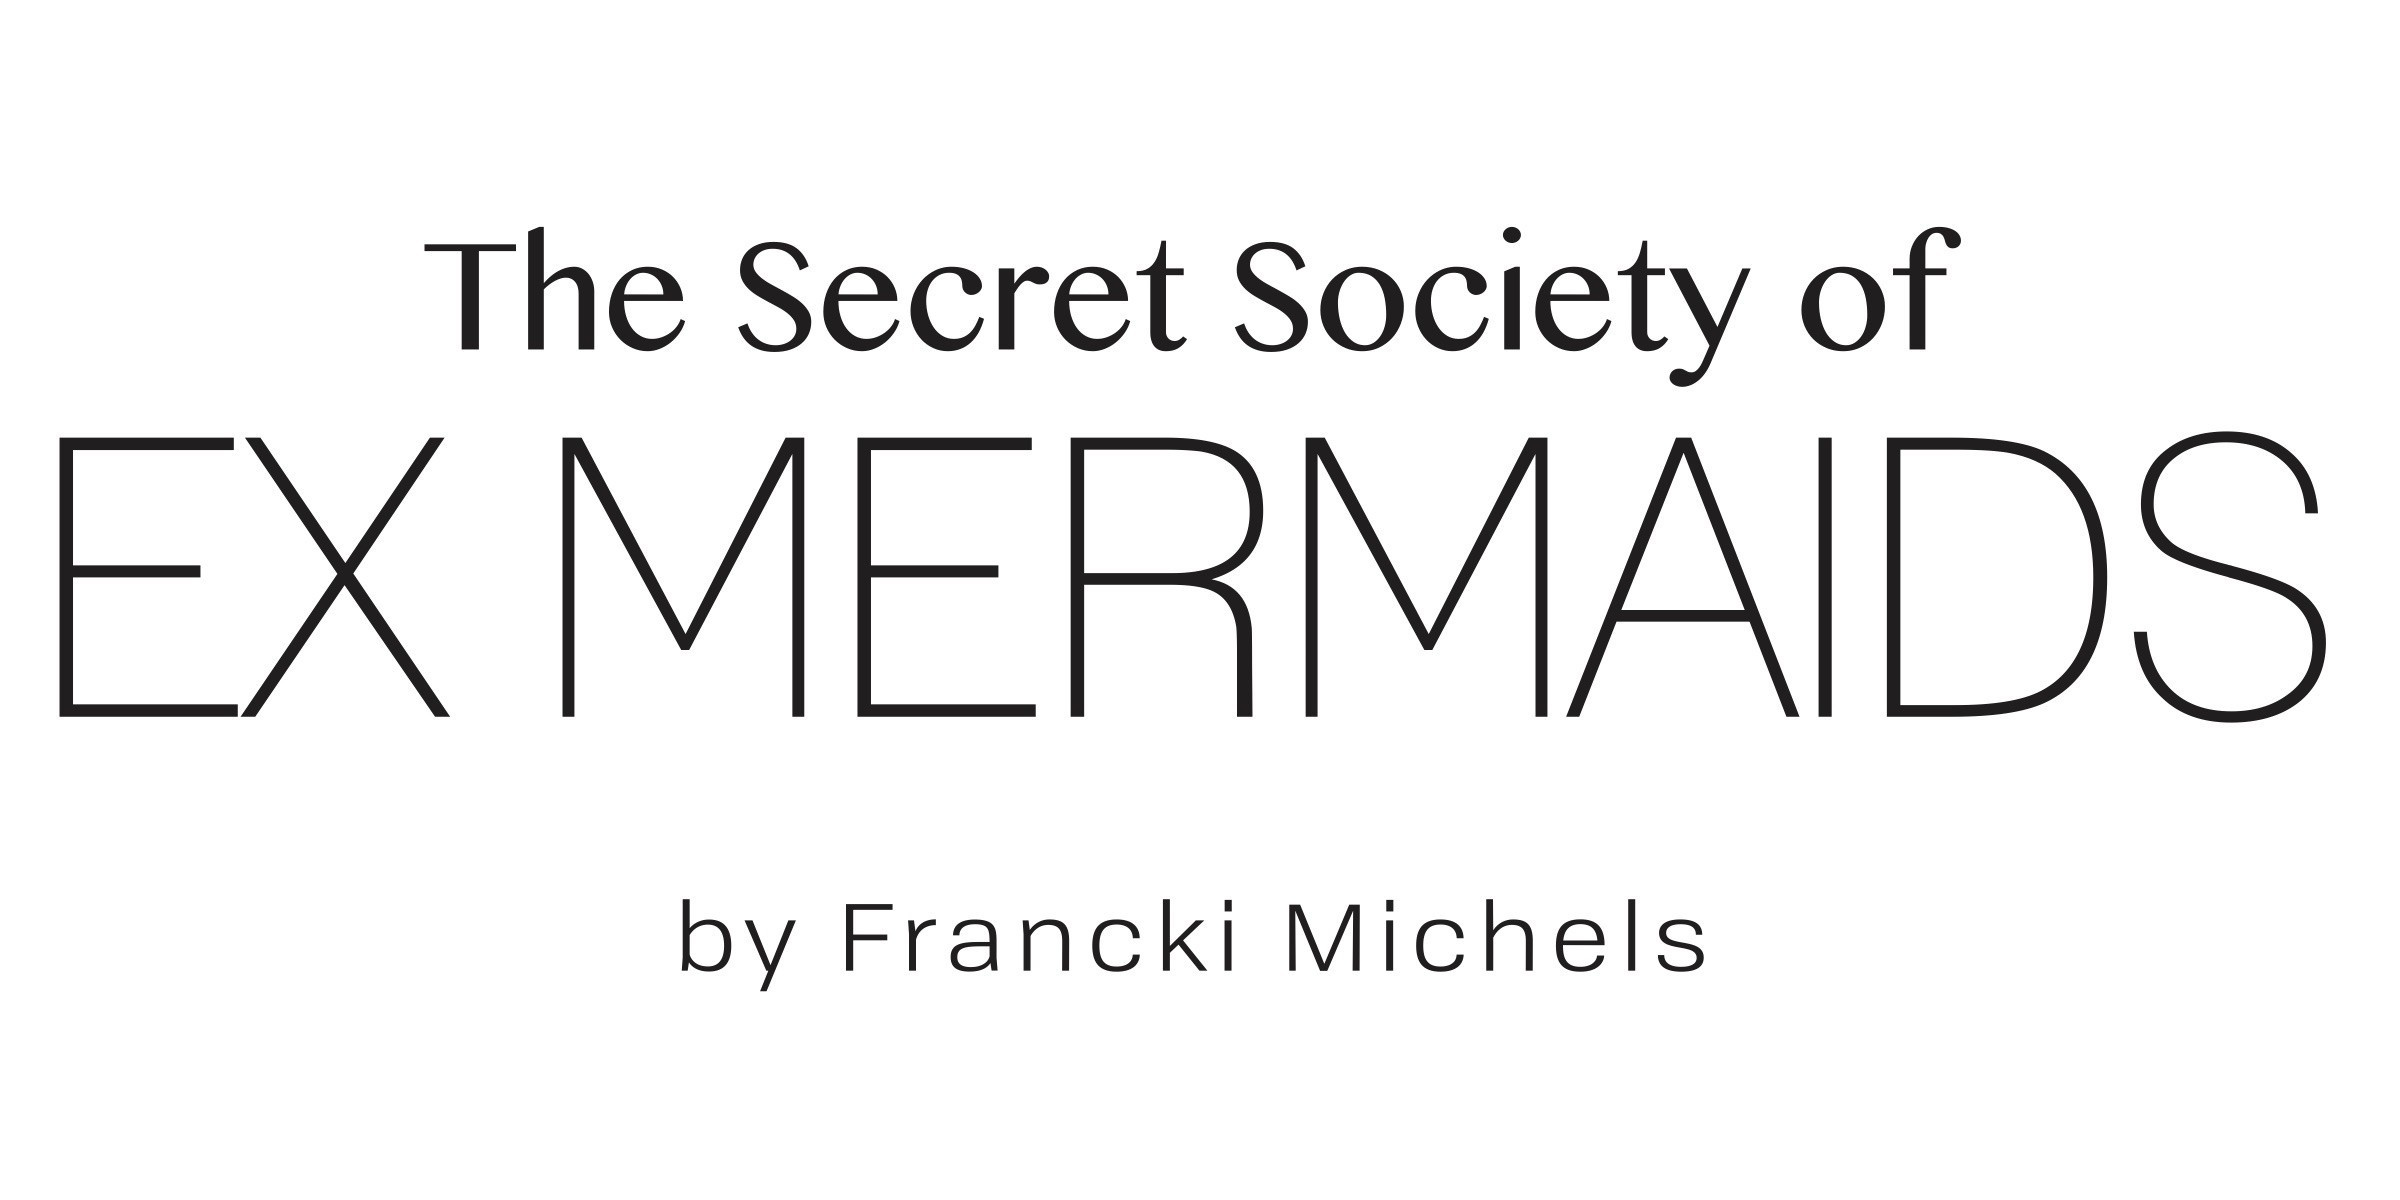 The Secret Society of Ex Mermaids | NOT JUST A LABEL